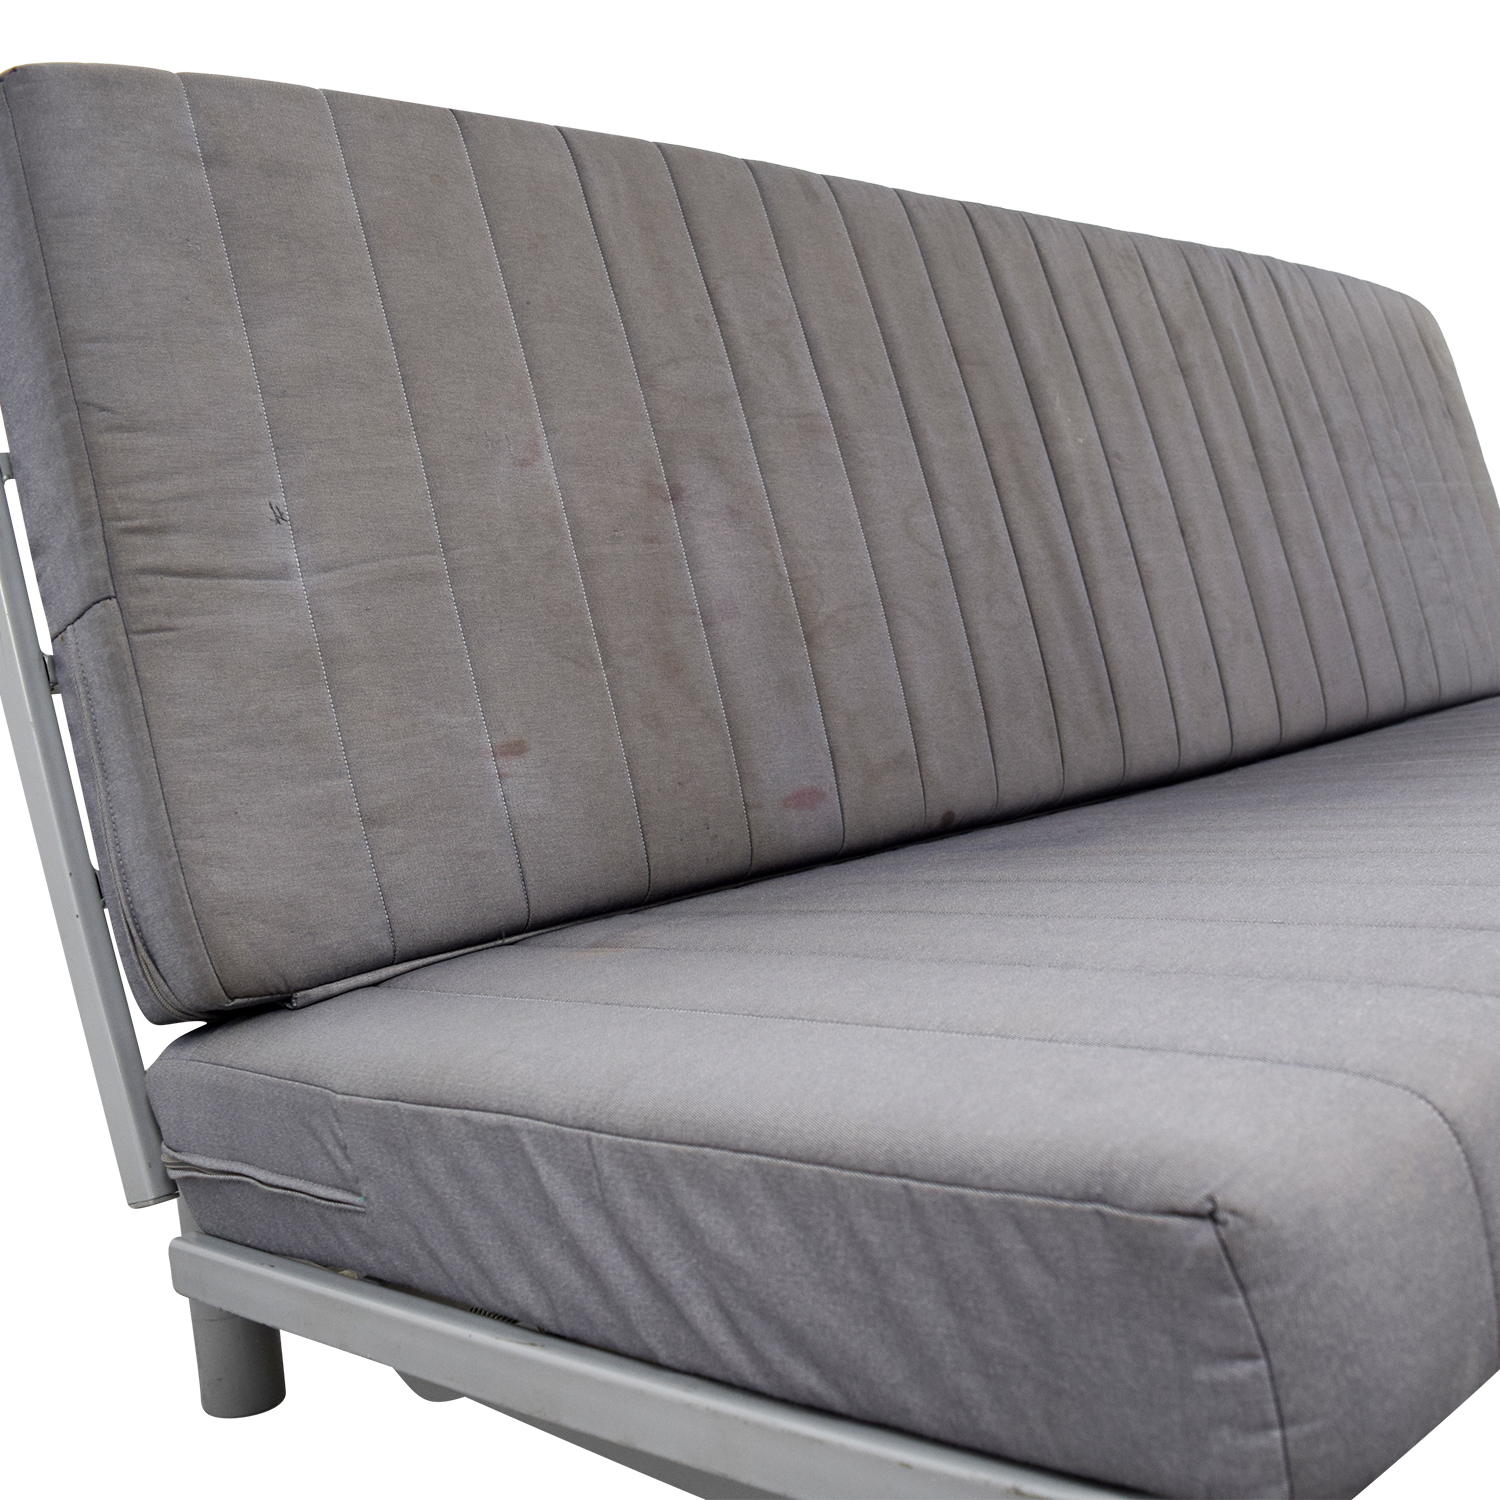 90 off ikea ikea grey sofa bed sofas for Ikea gray sofa